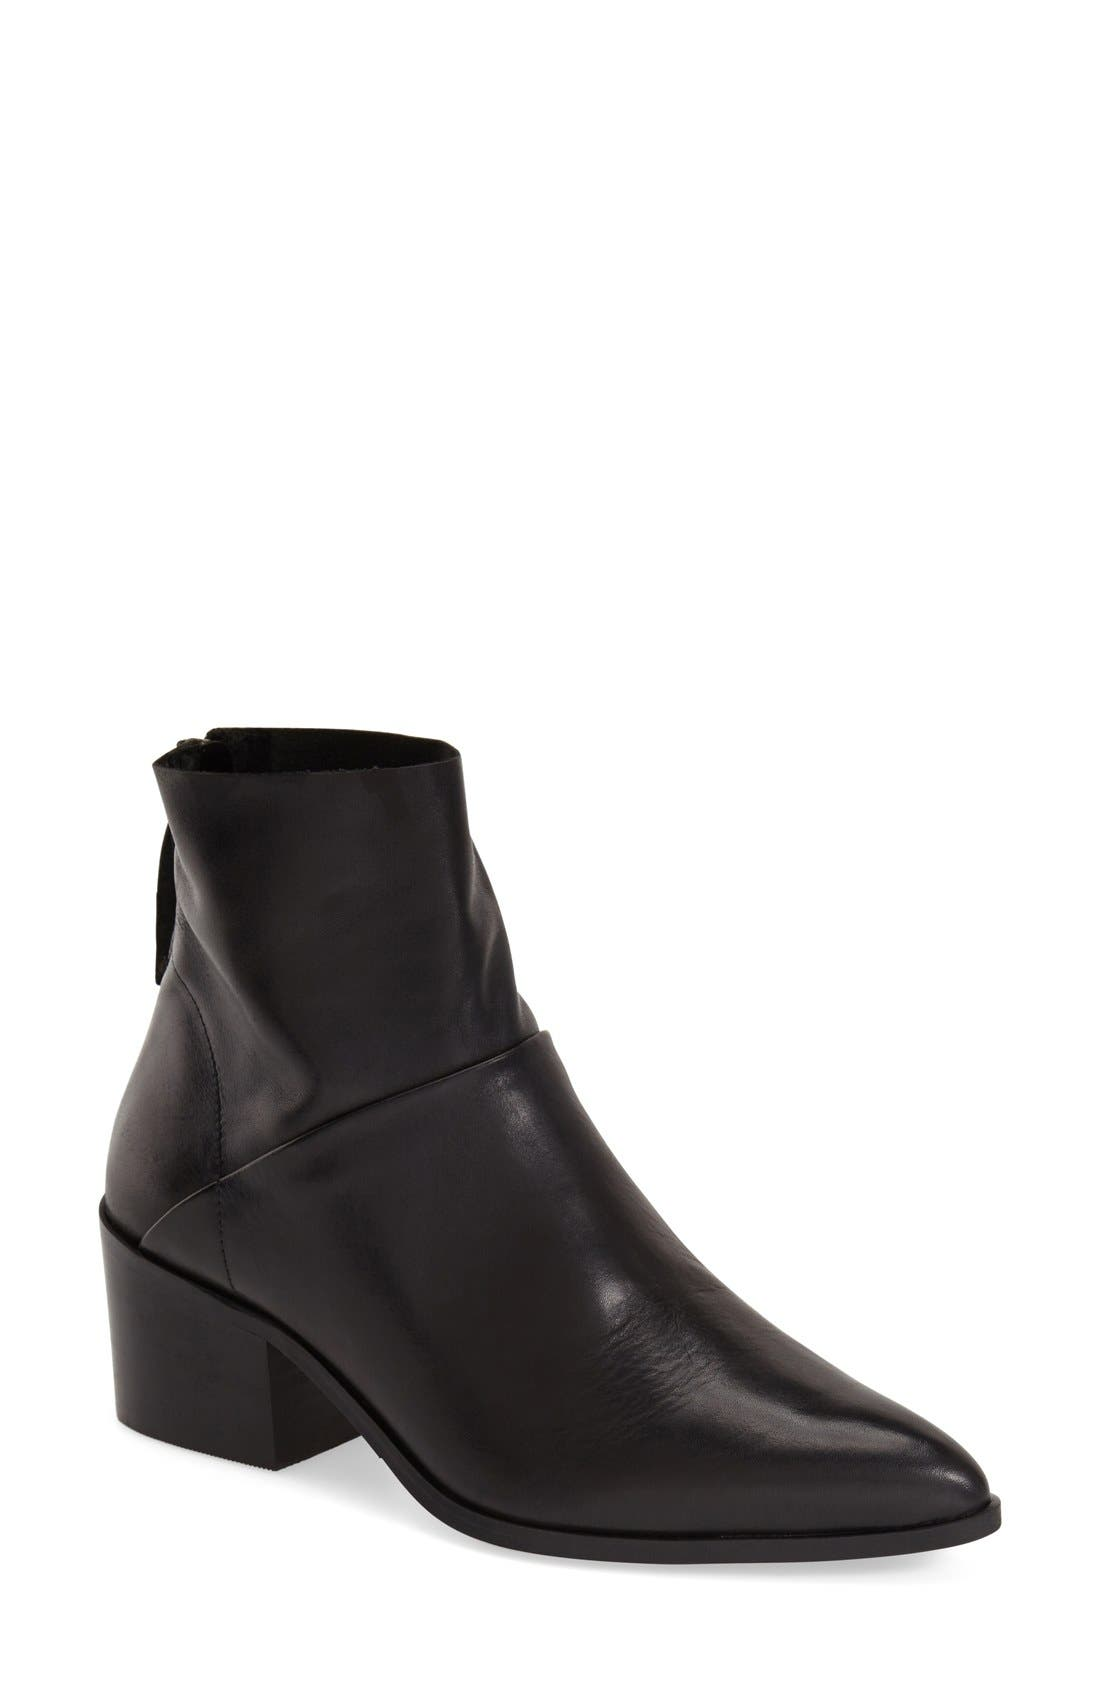 'Midnight' Pointy Toe Boot,                         Main,                         color, Black